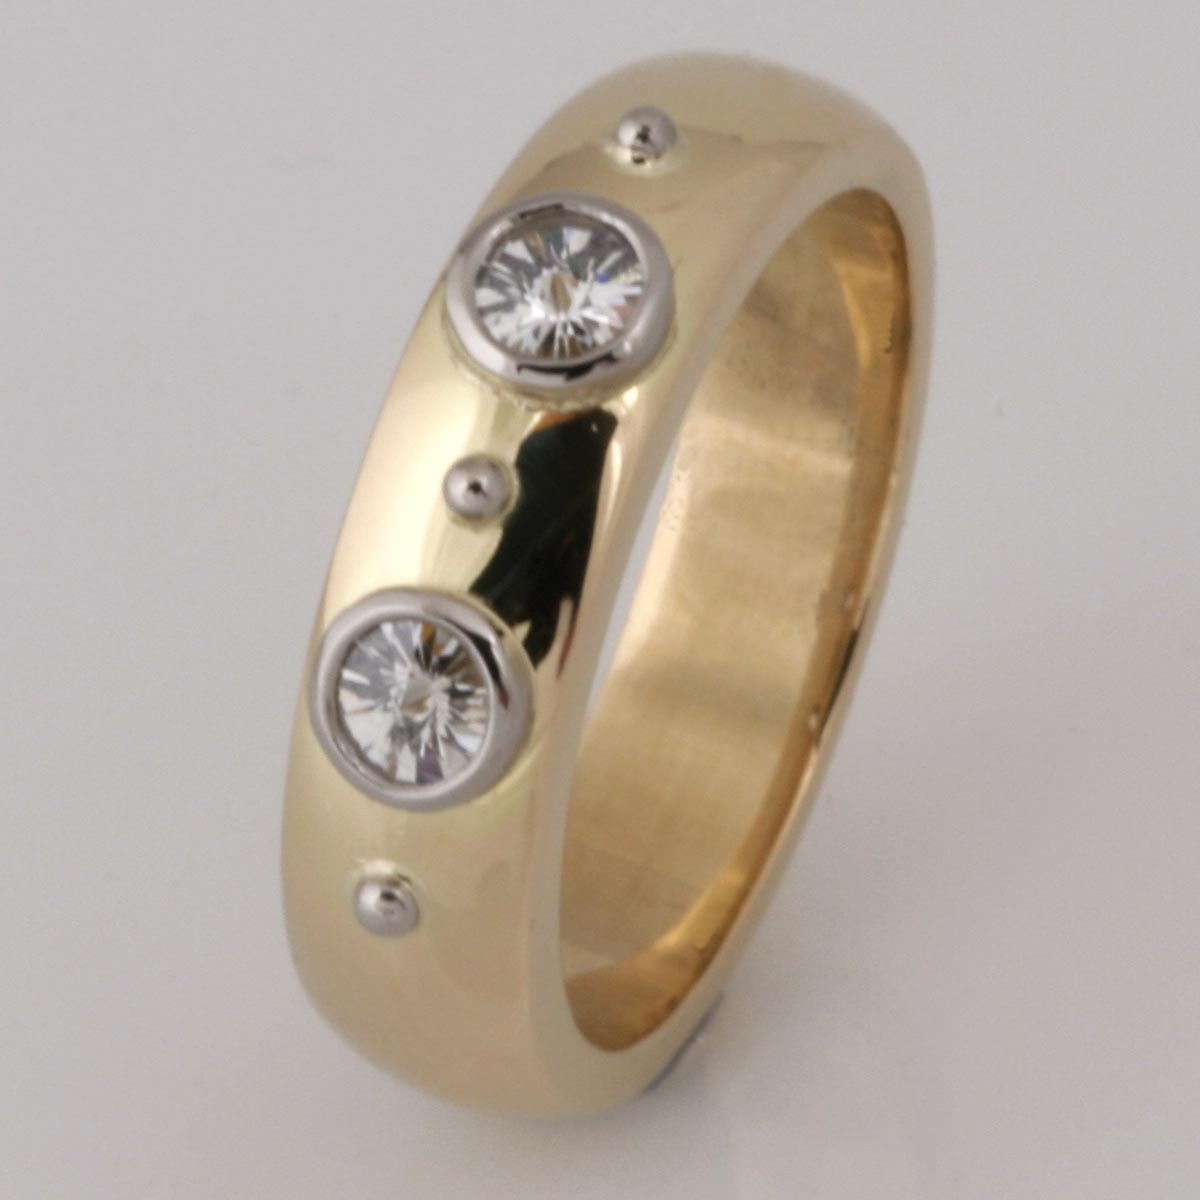 Handmade ladies 18ct yellow and white gold 'Sprirt' cut diamond wedding ring